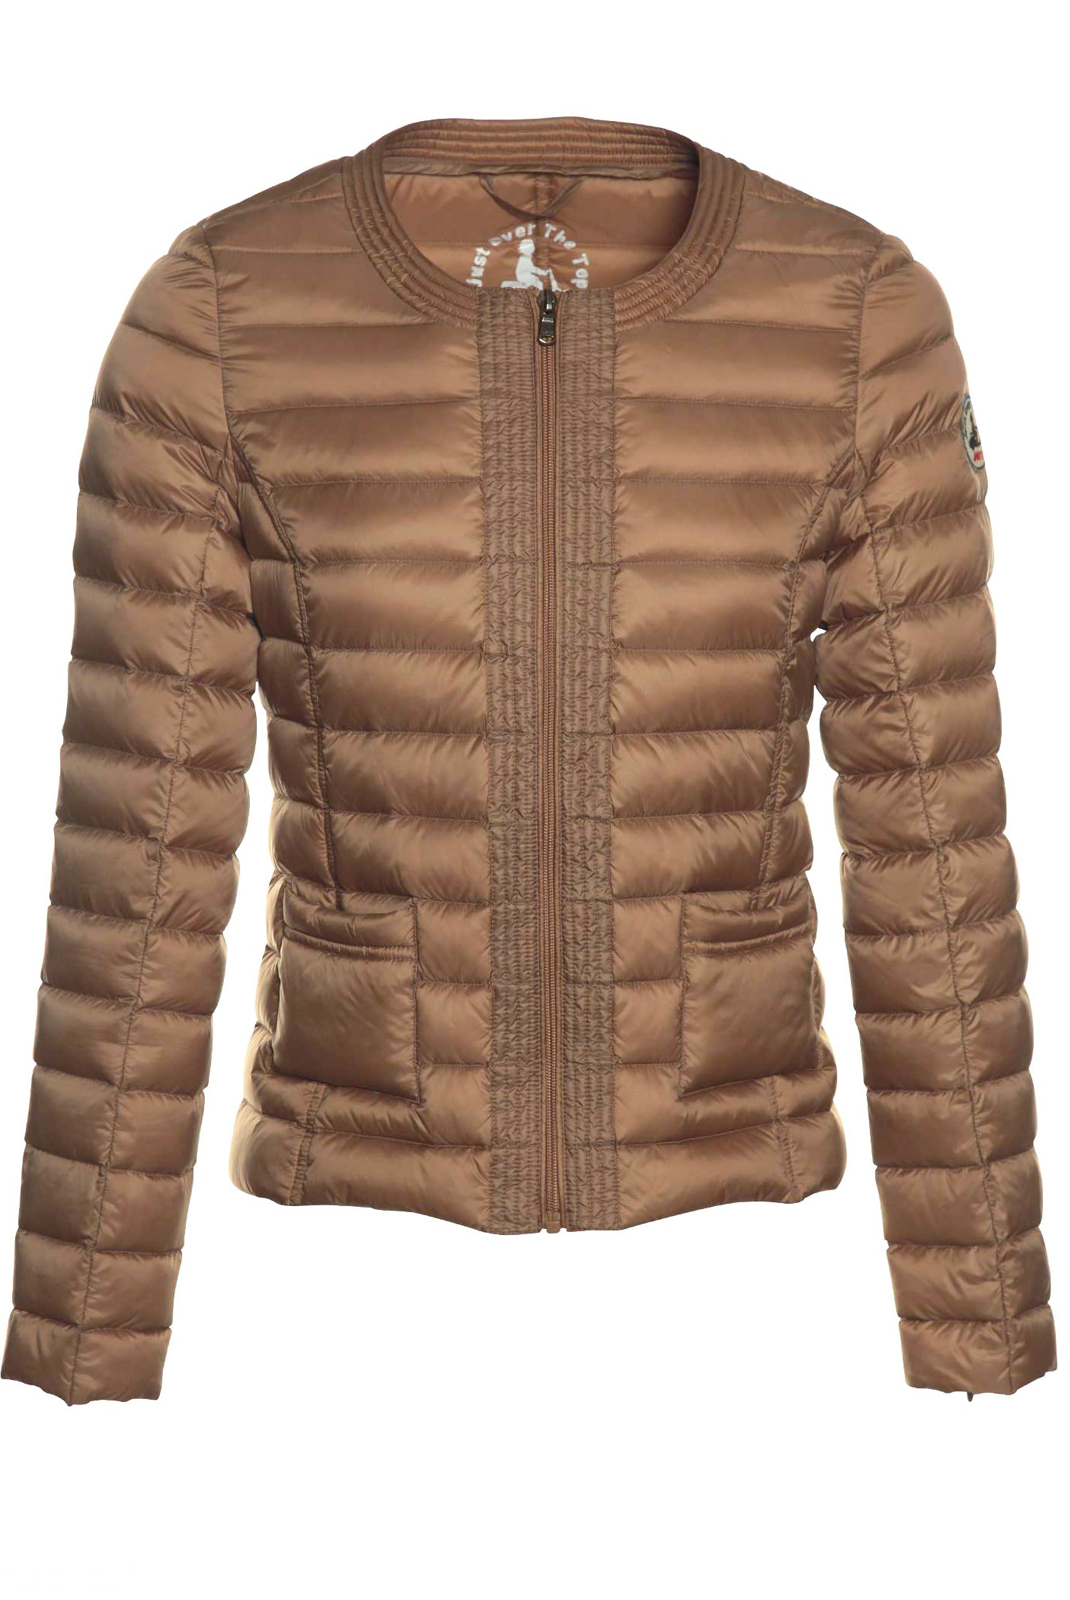 Blouson  Just over the top DOUDA 812 CAMEL